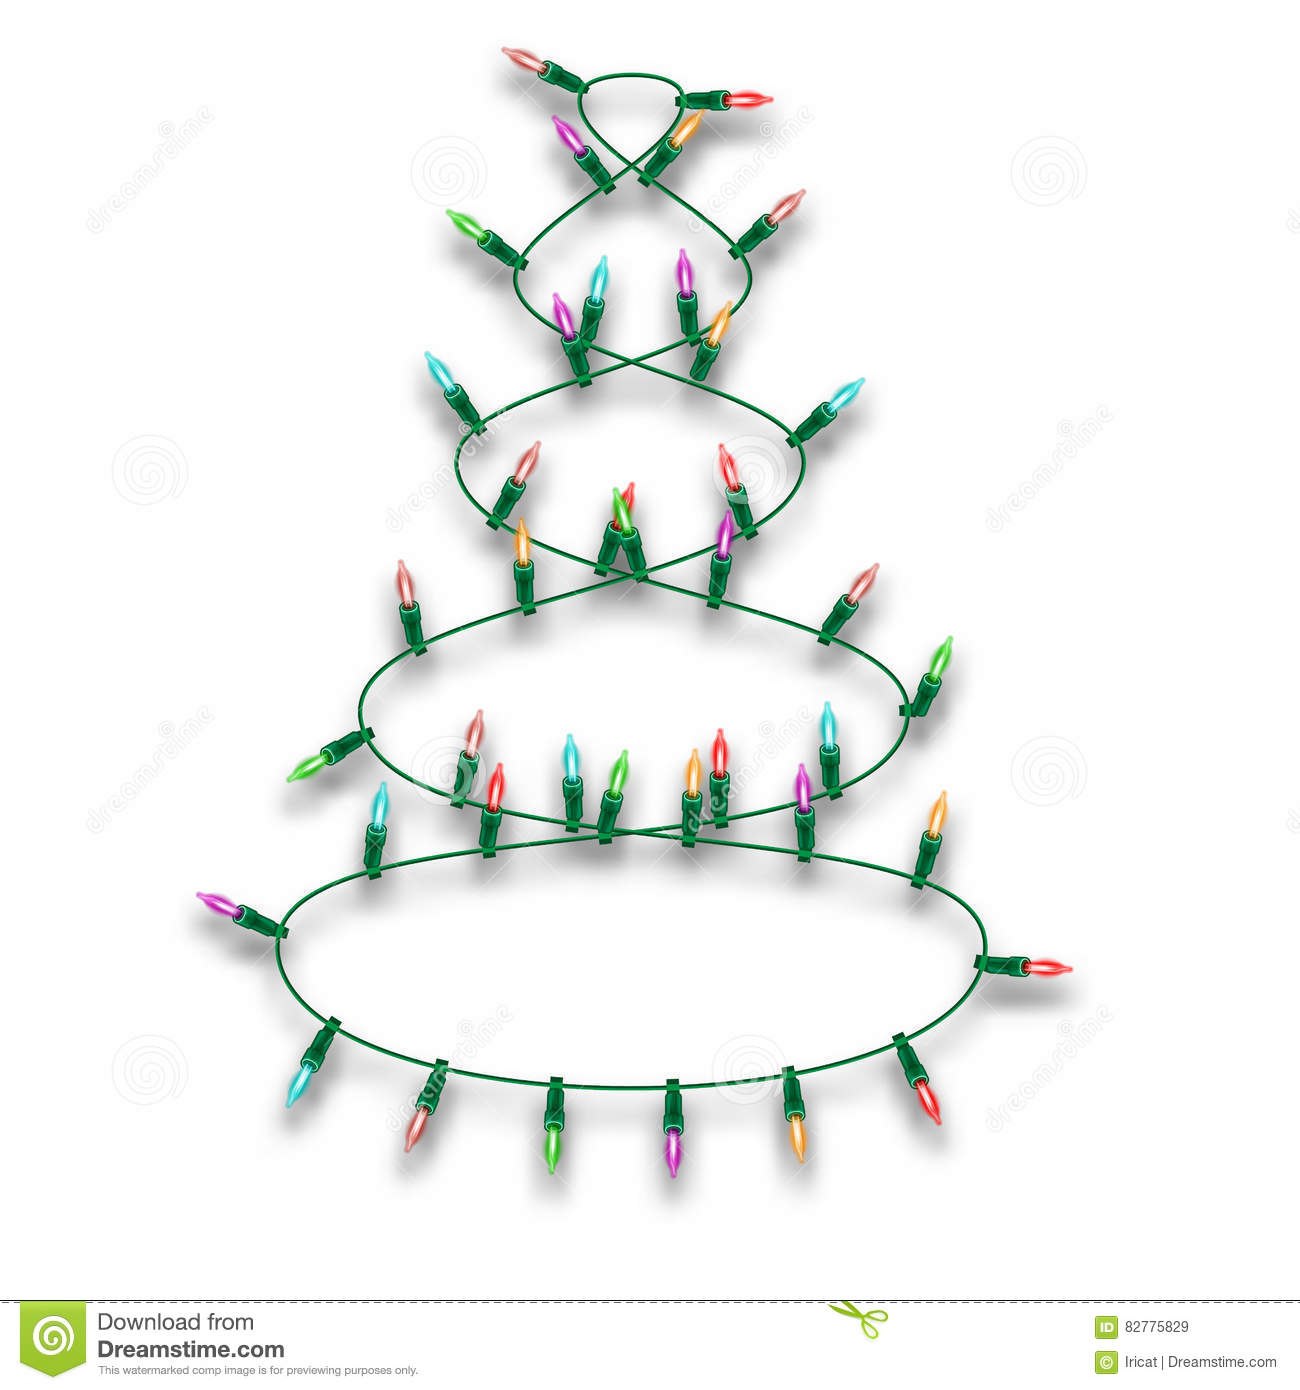 Multicolored Christmas Lights Garland In The Form Of A Christmas